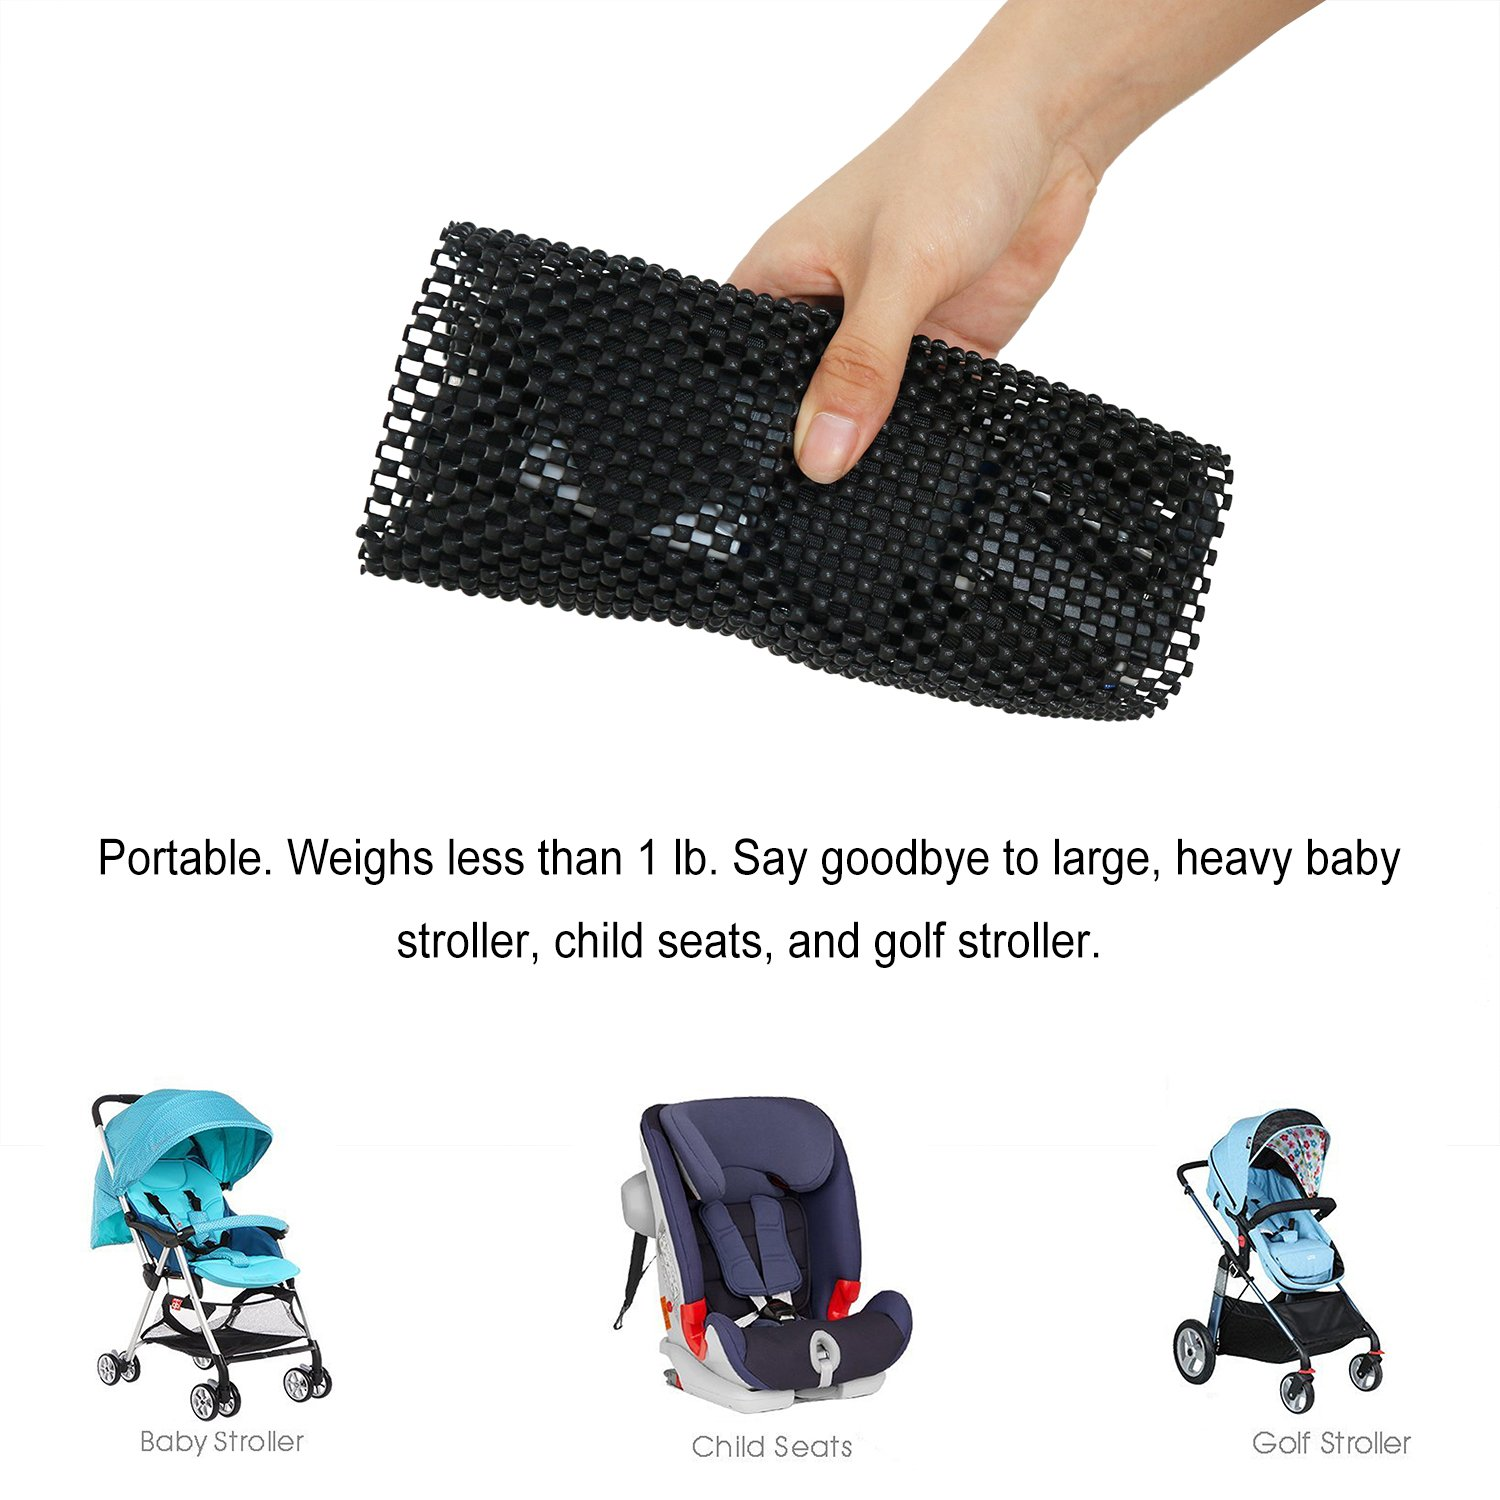 Children Care Harness Safety Airplane Restraint System with Non-Slip Drying Mat For Kids/Toddlers/Children by BabyKim by BabyKim (Image #4)